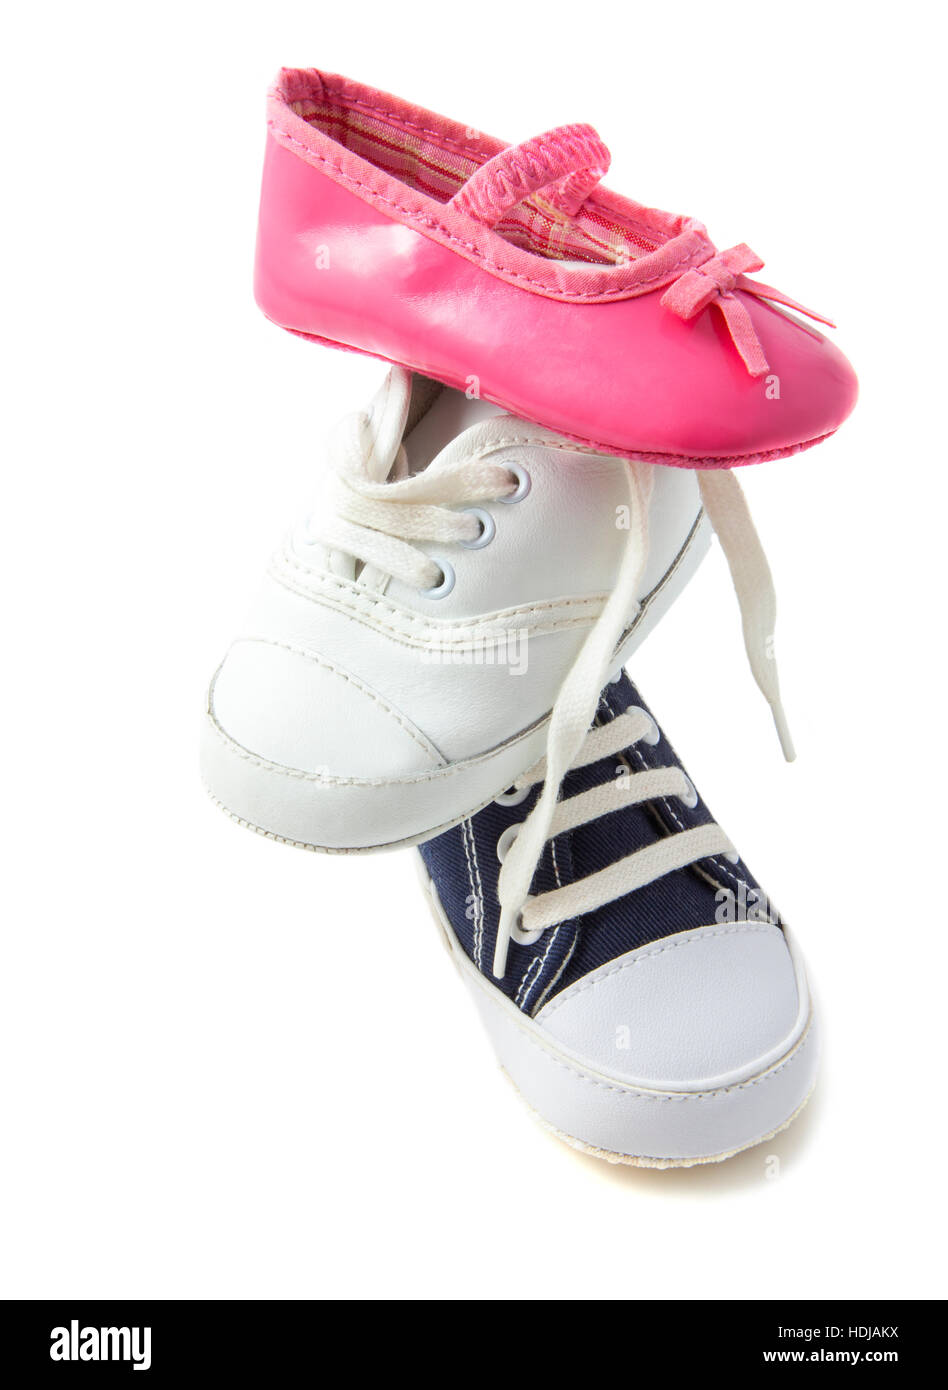 Baby shoes on a pile isolated over white - Stock Image